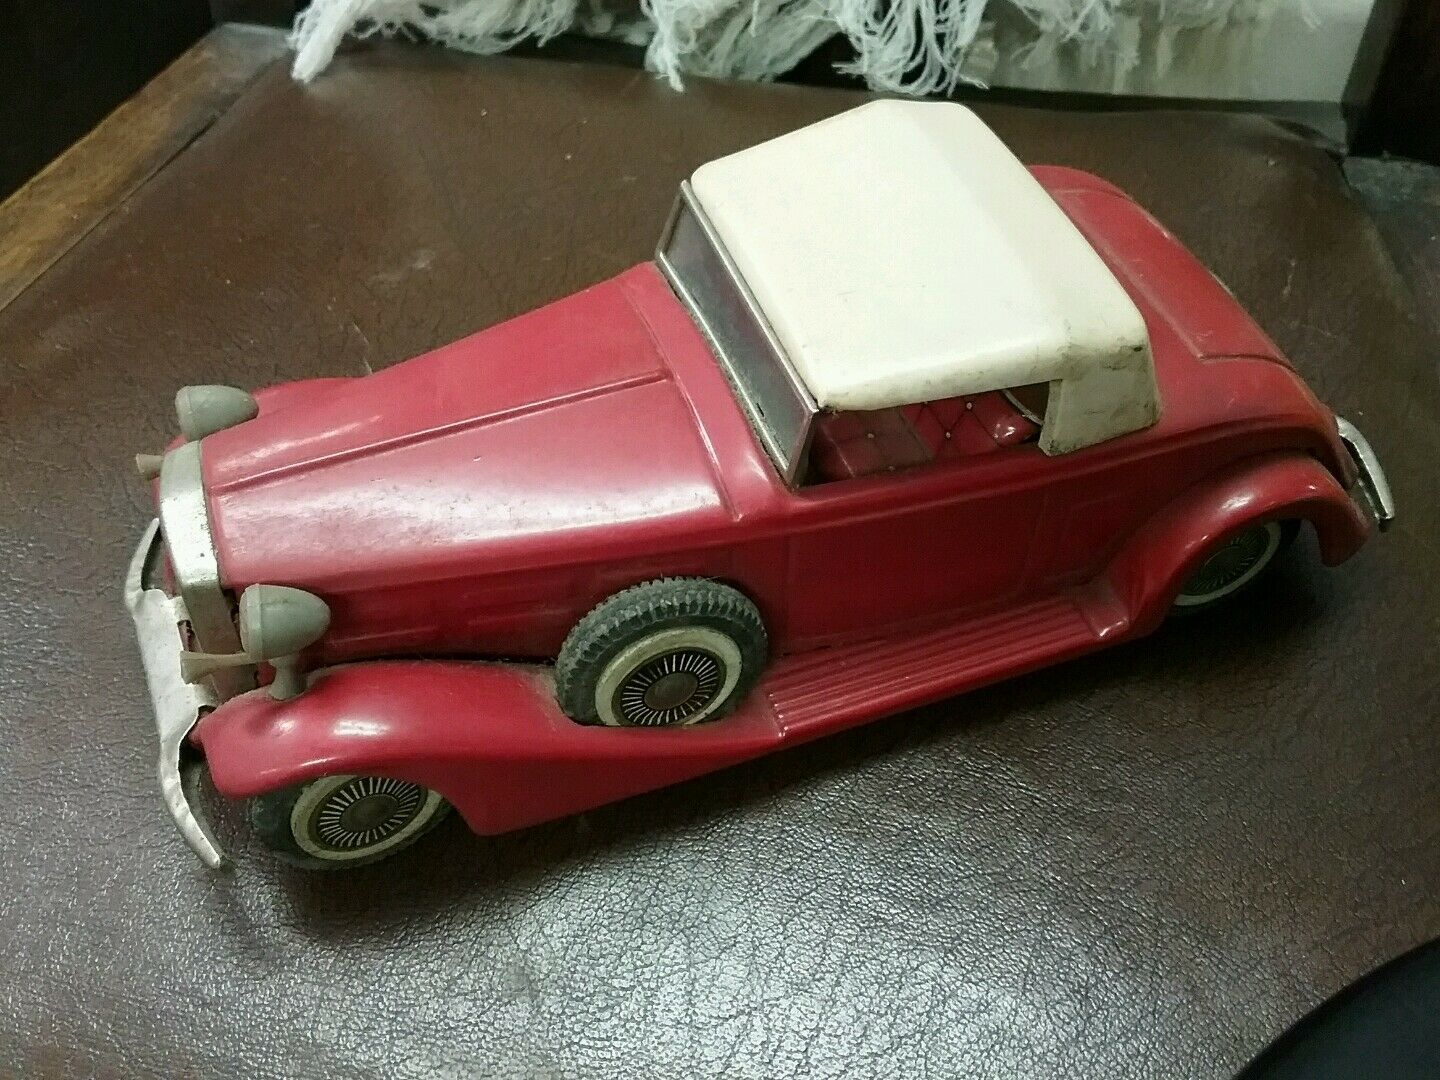 BANDAI 1933 CADILLAC Red TIN LITHO FRICTION FRICTION FRICTION TOY MADE IN JAPAN 7f66fb